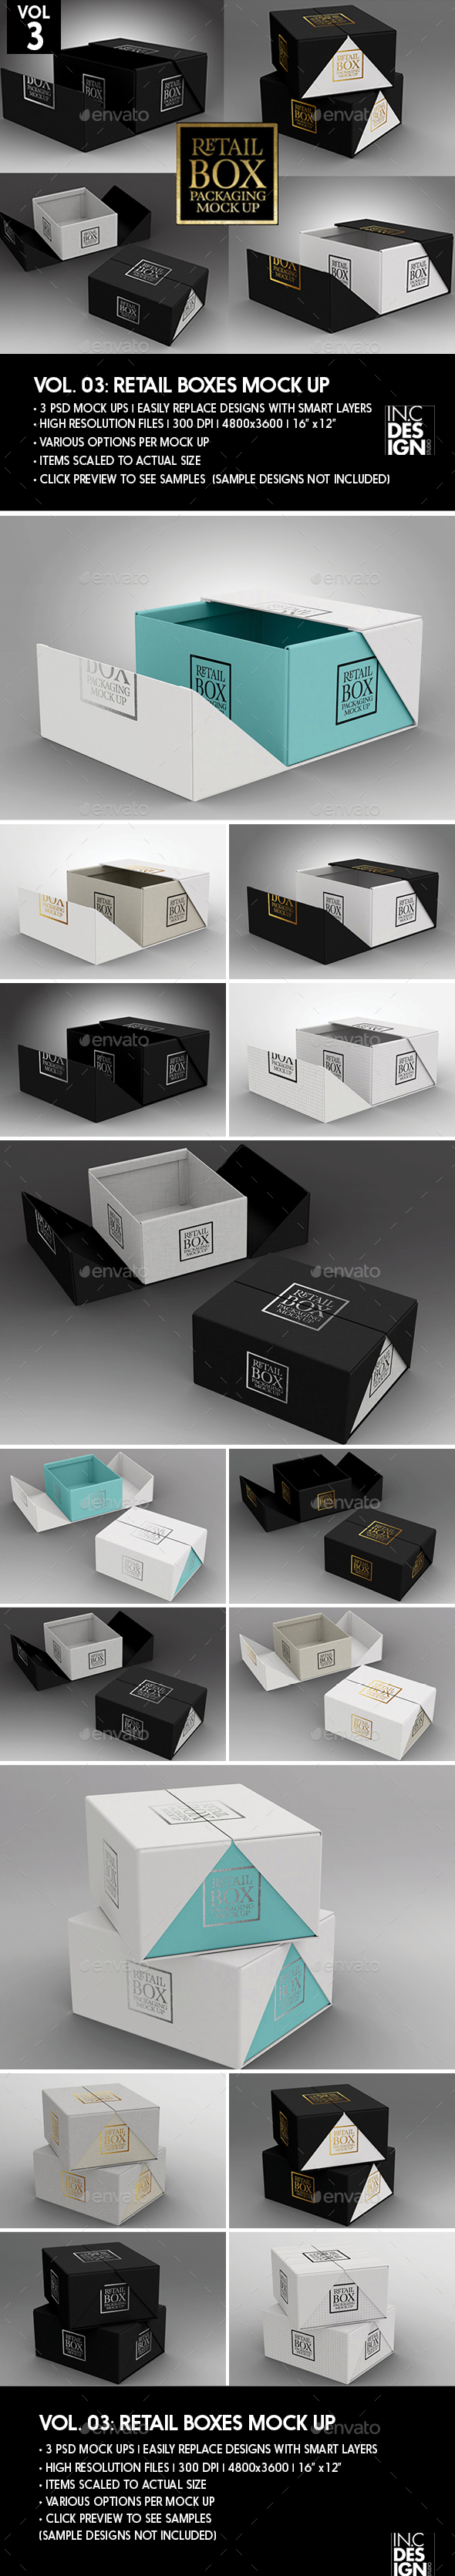 Retail Boxes Vol.3: Fold Up Box Packaging Mock Ups